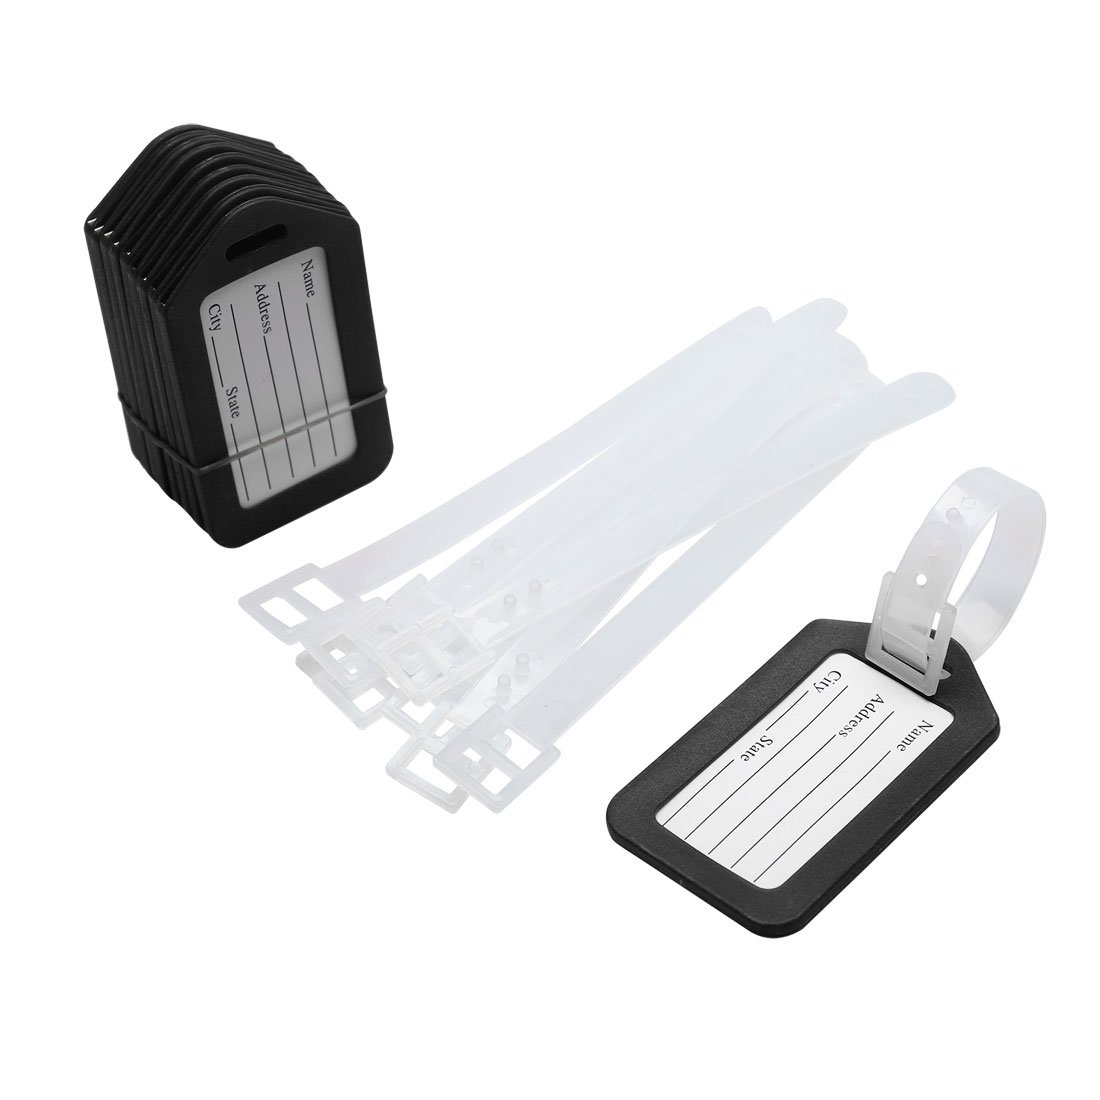 Address Information Plastic Bags Backpack Luggage Tag Black White 10 Pcs